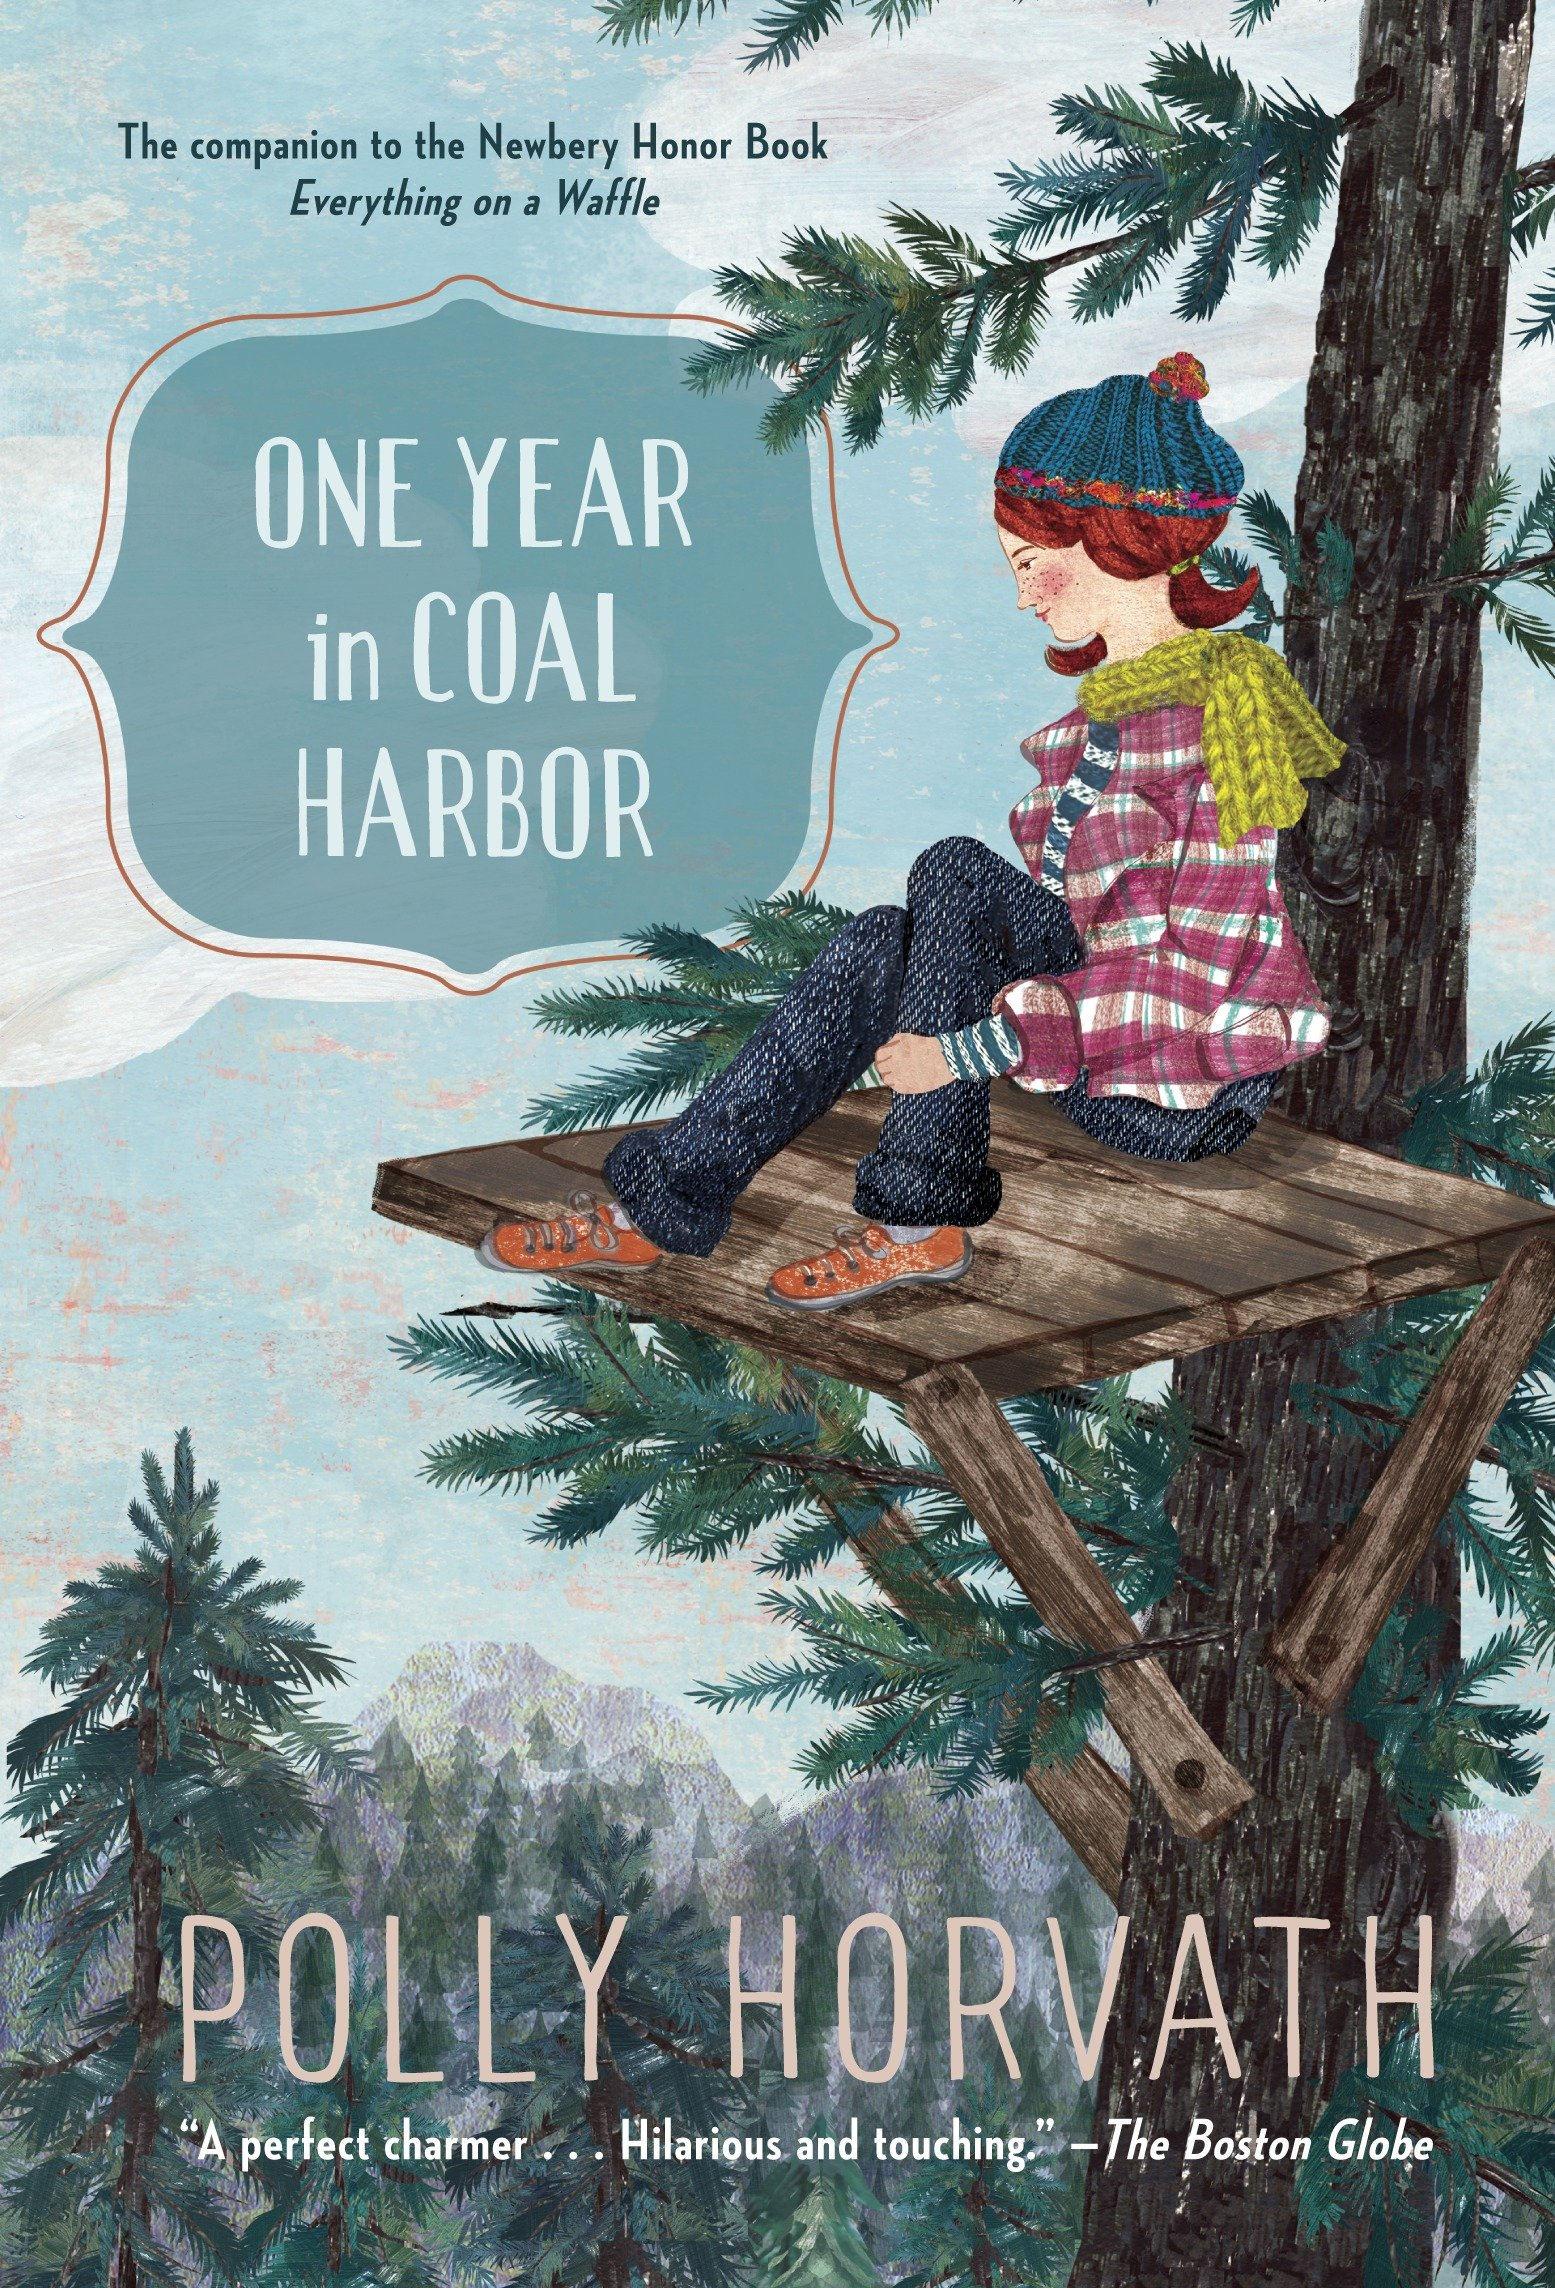 One year in Coal Harbor cover image